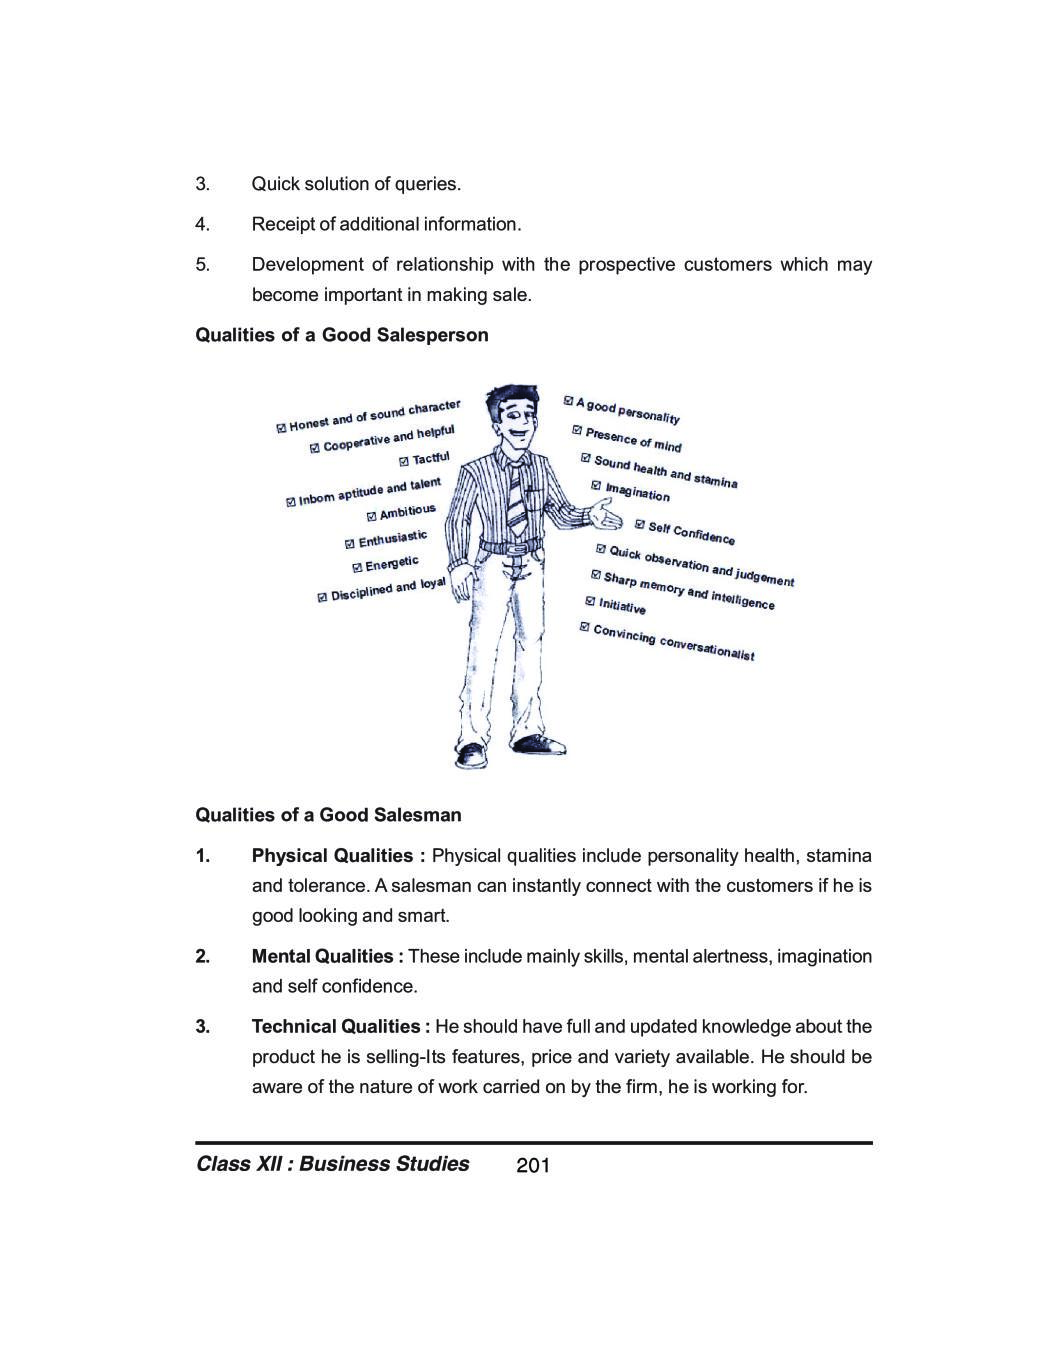 Class 12 Business Studies Notes for Marketing Management